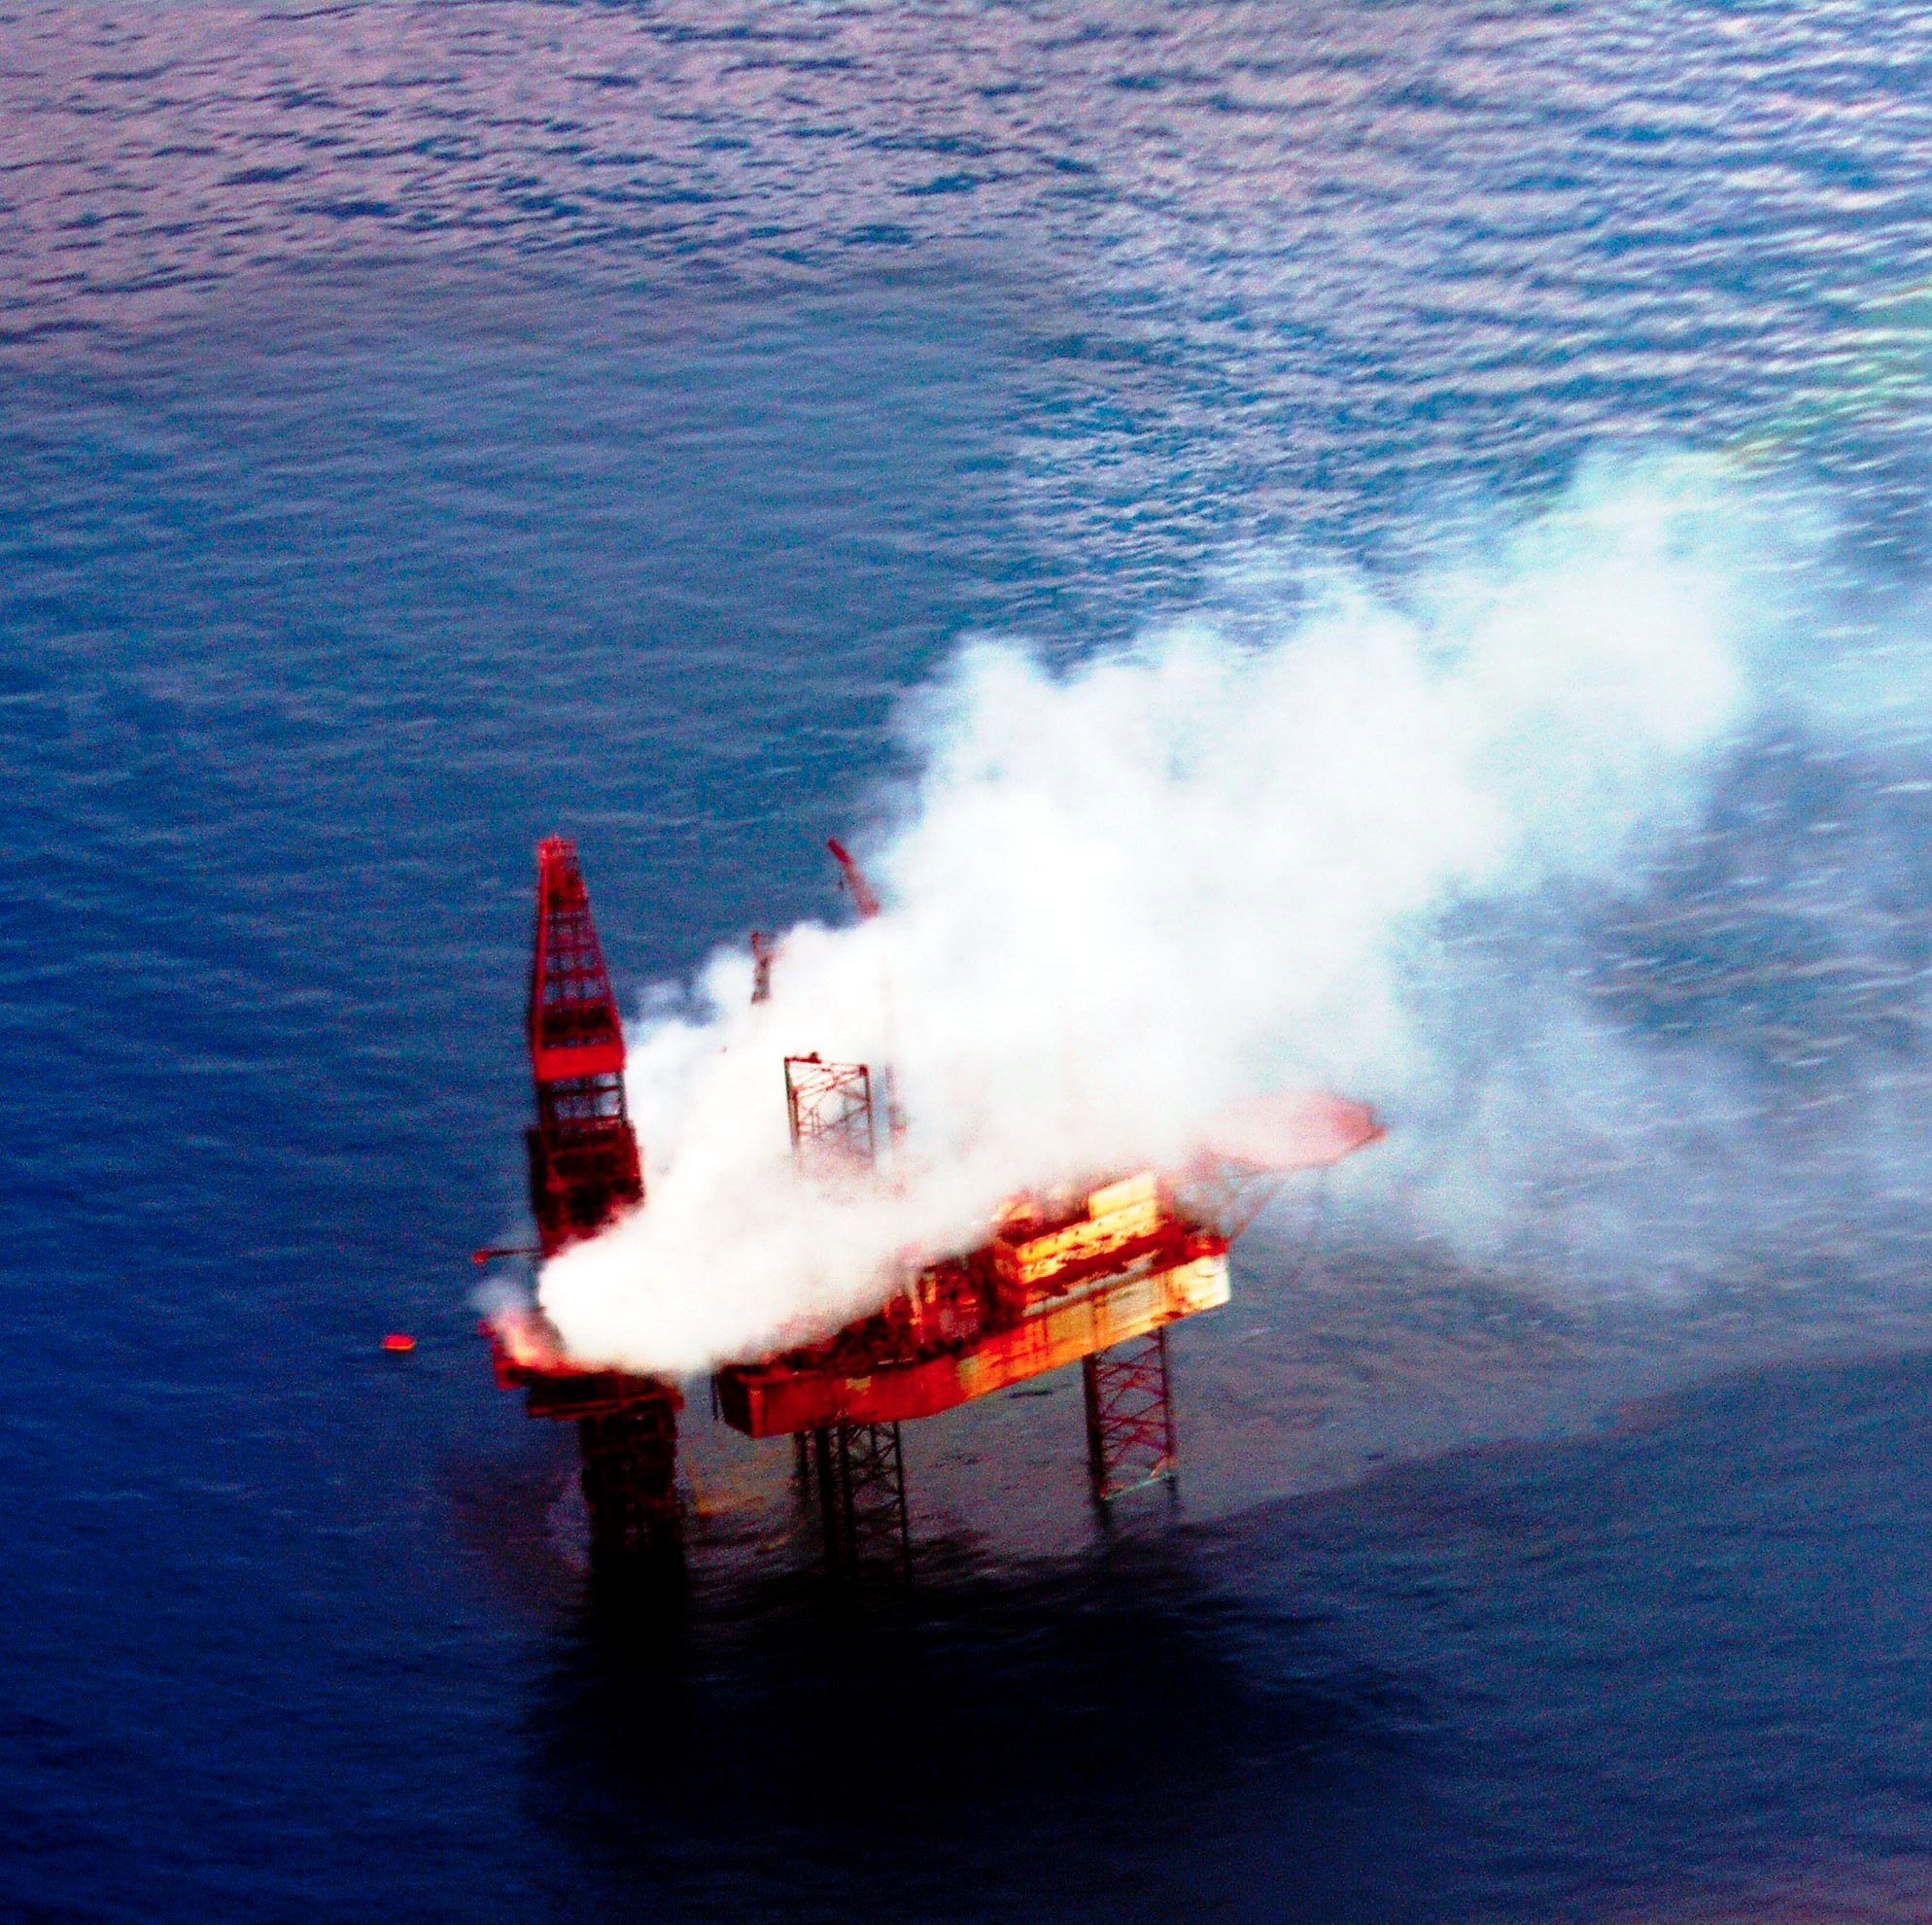 Montara oil rig on fire off Kimberley coast